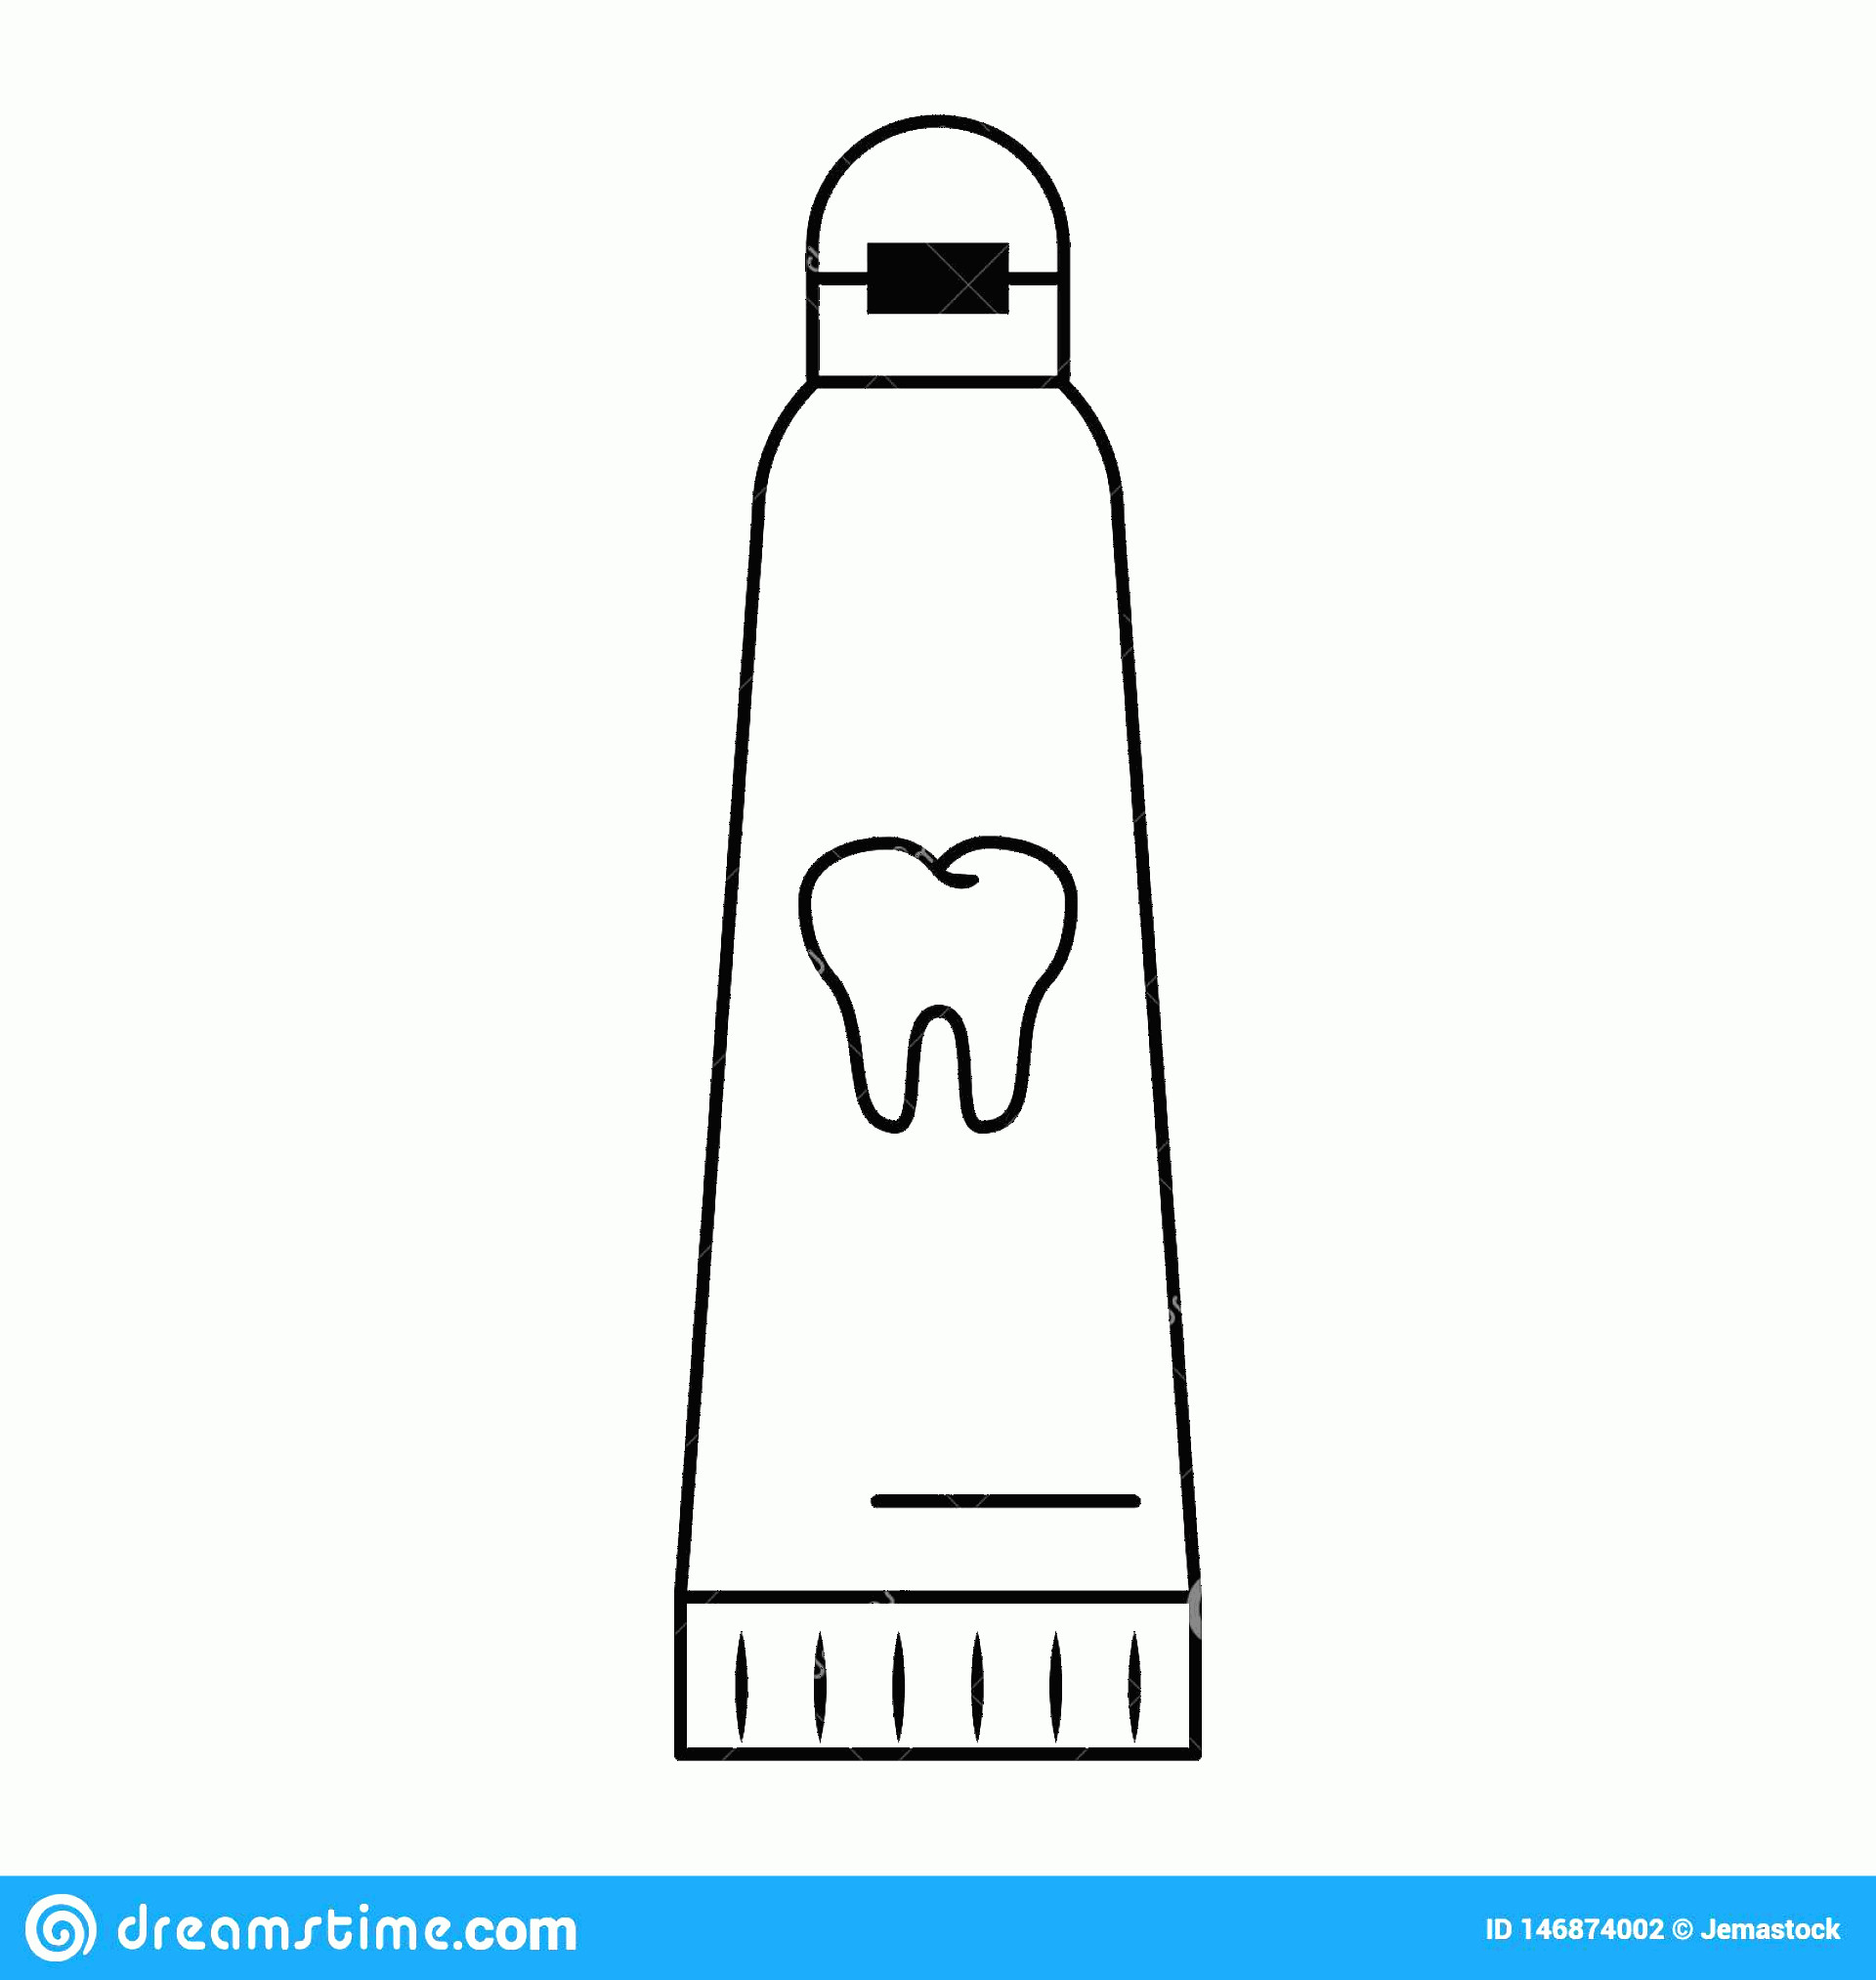 Toothpaste Cartoon Vector: Dental Care Toothpaste Cartoon Isolated Black White Vector Illustration Graphic Design Image